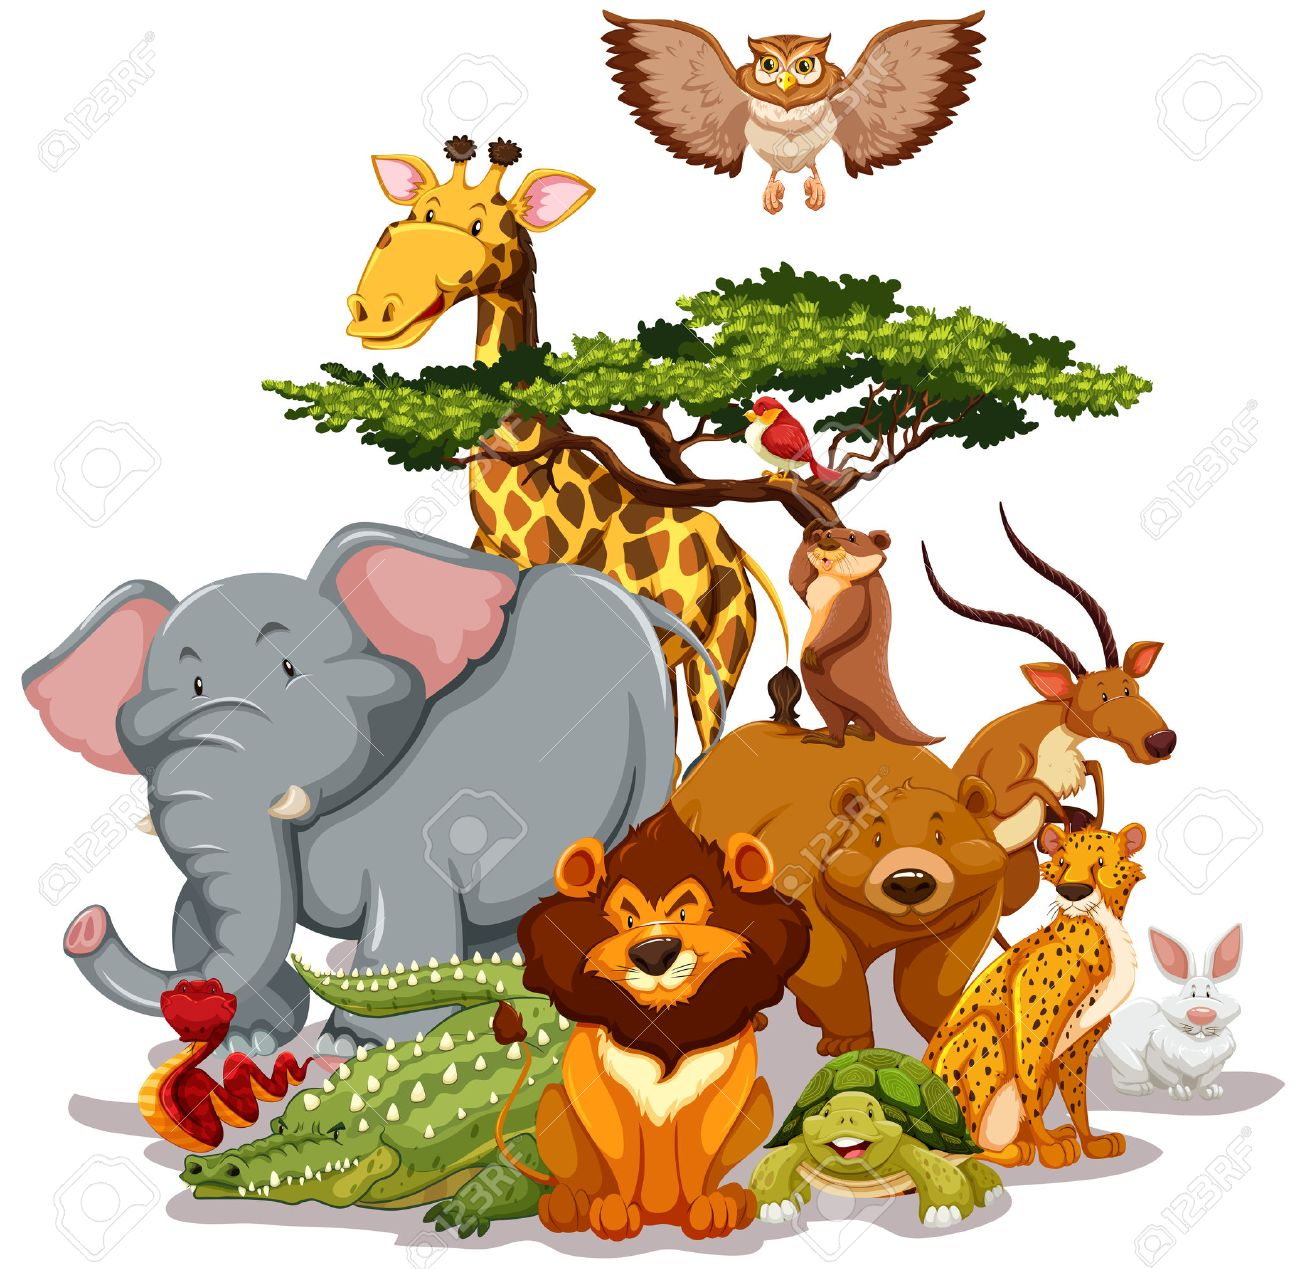 Group of animals clipart 3 » Clipart Station.